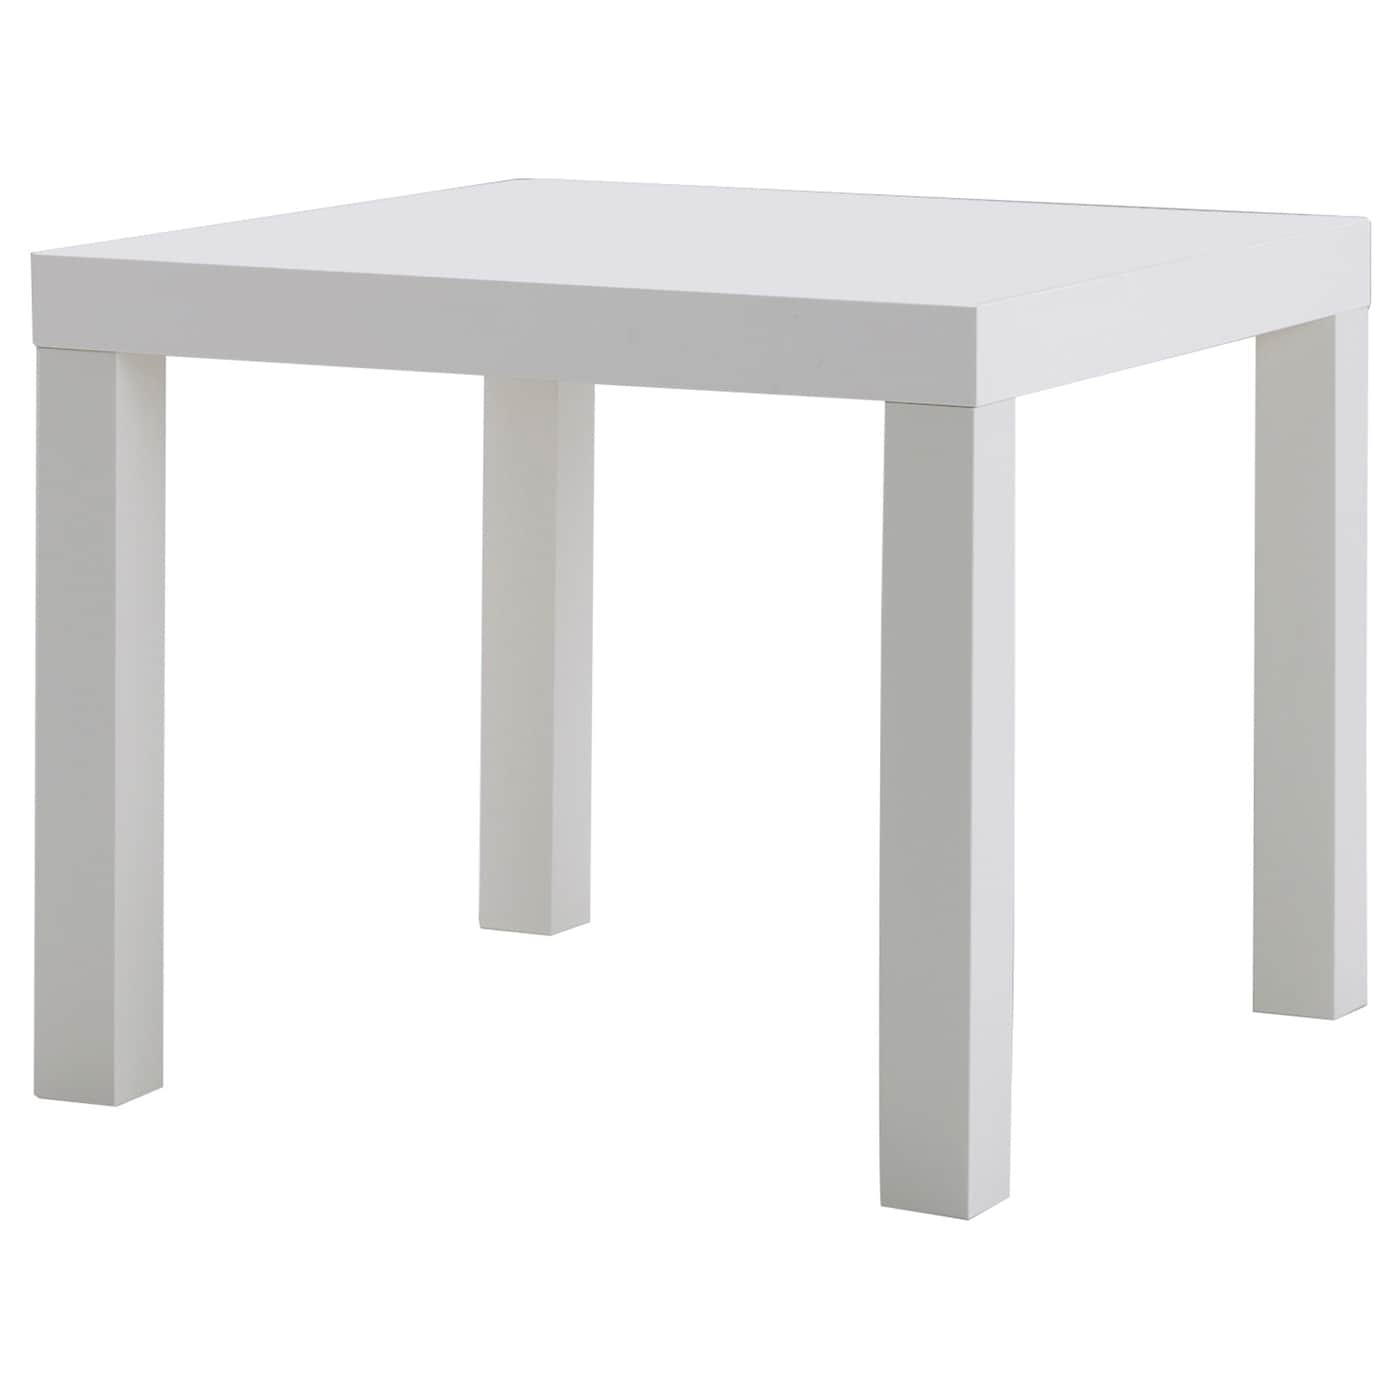 IKEA LACK table d'appoint  Facile à monter. Léger donc facile à déplacer.